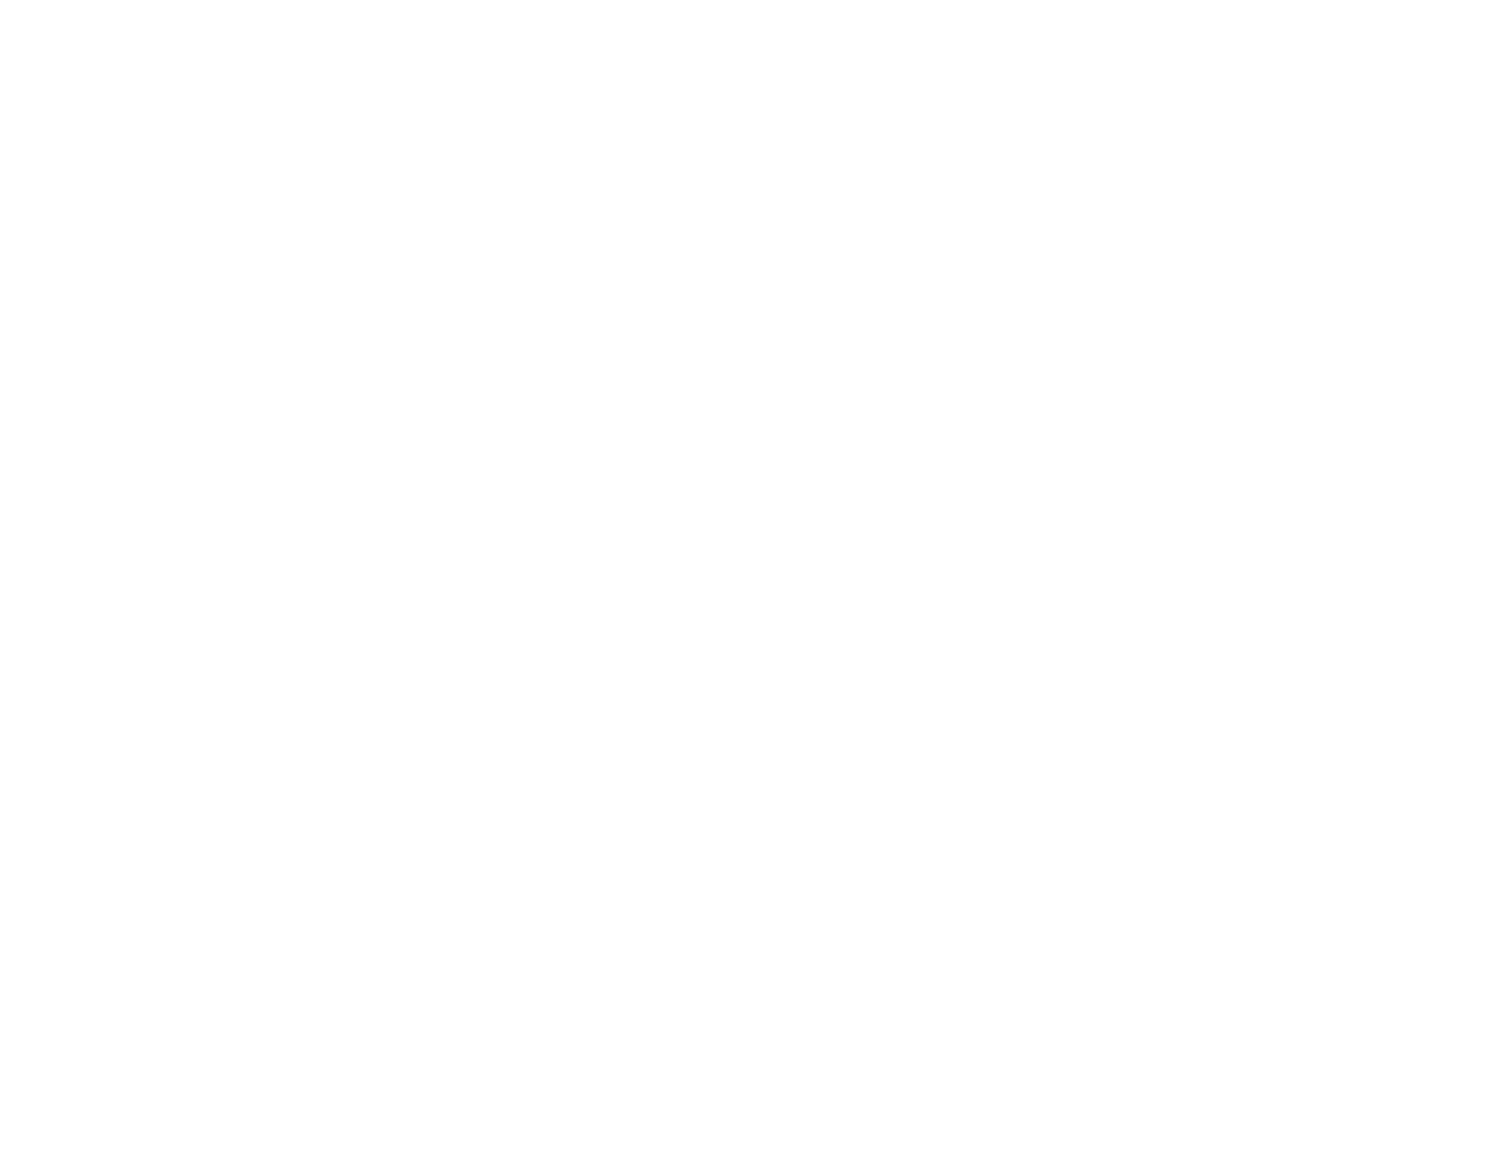 Every Nation Marseille